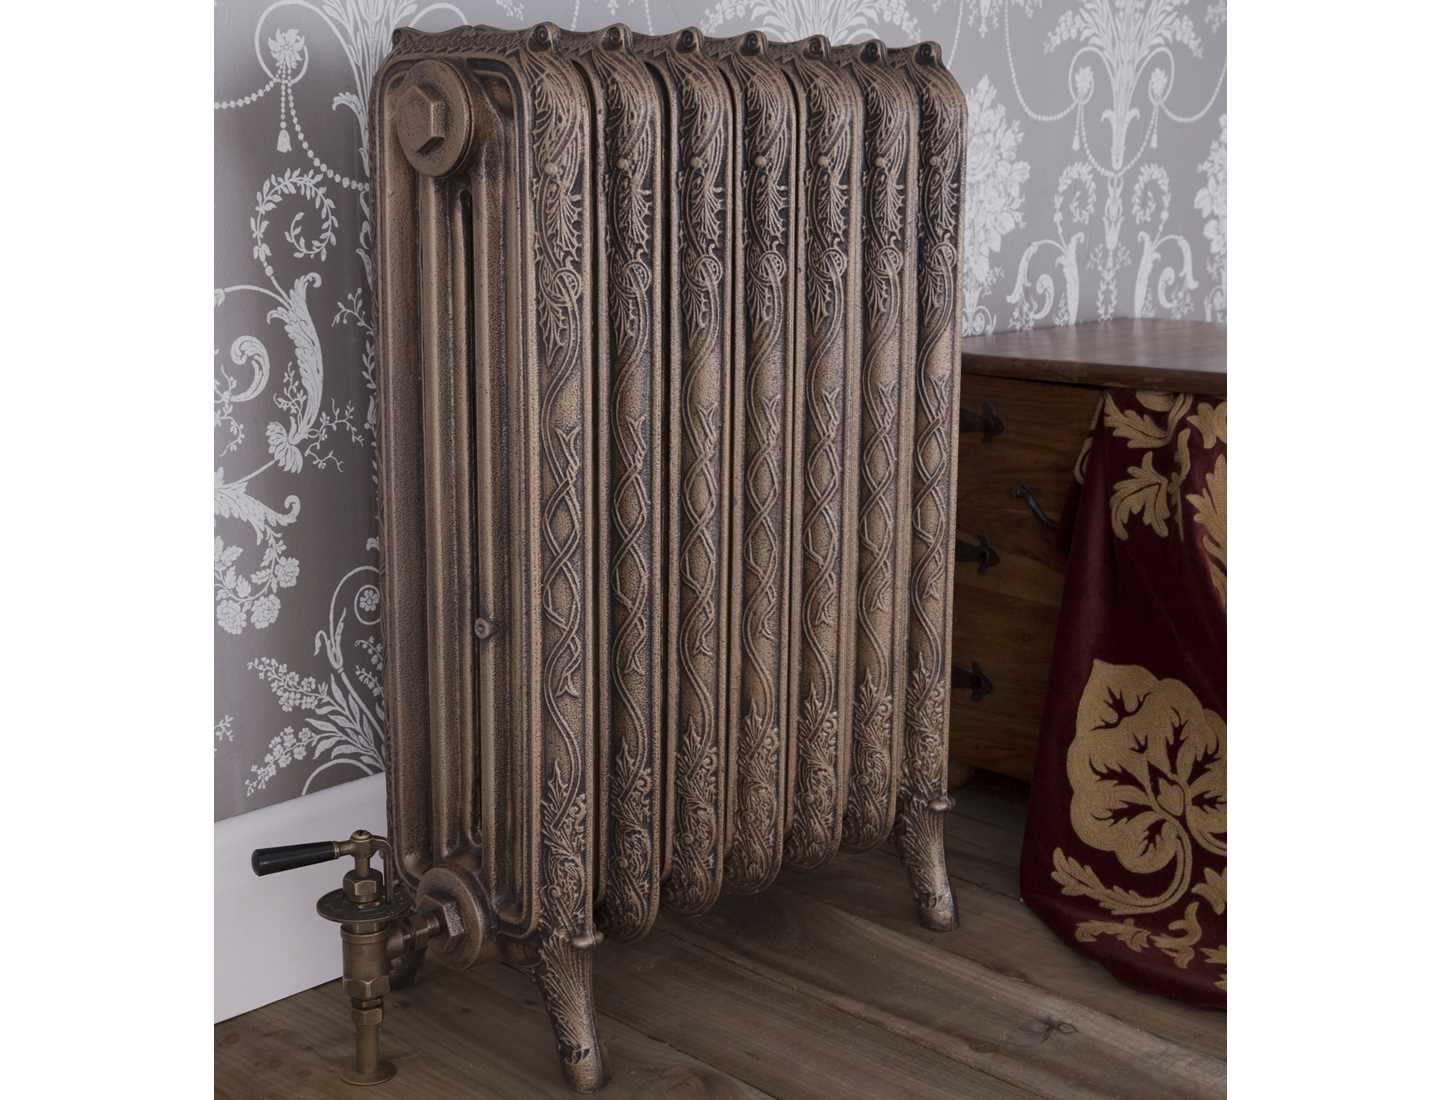 Braid 4 column radiator in antique hammered gold finish with manual radiator valve